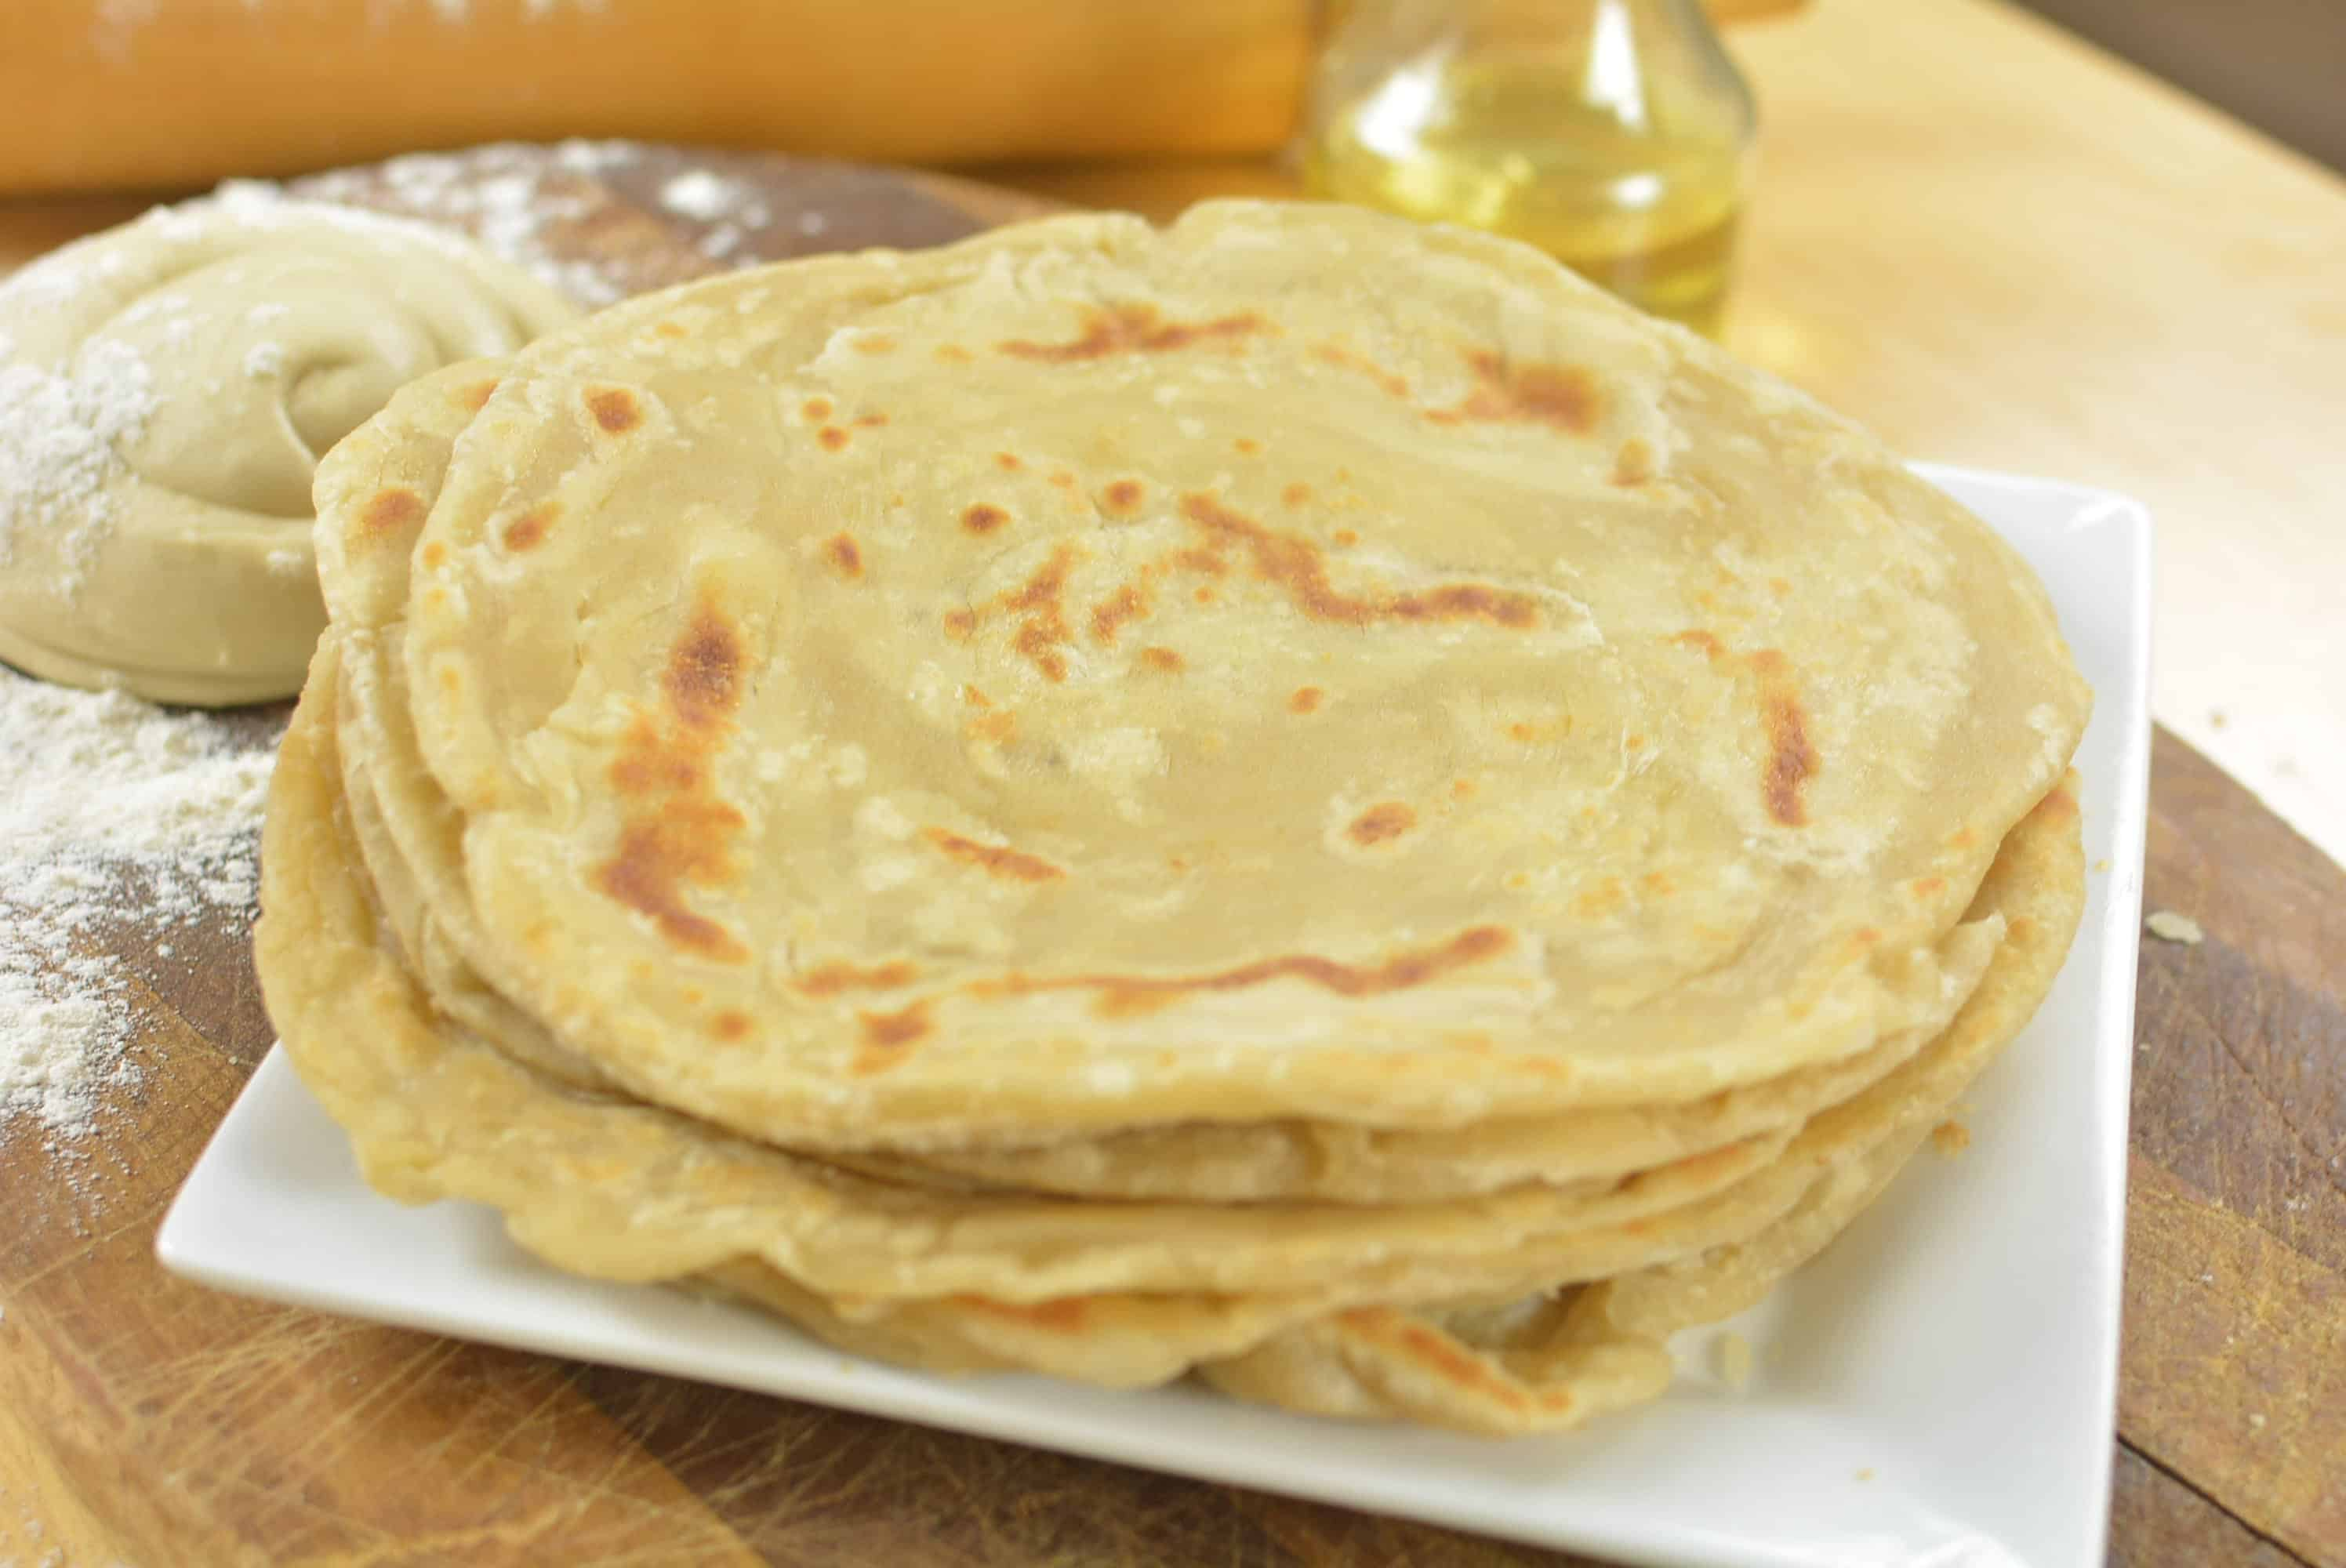 East african chapati recipe how to make chapati east african chapati recipe how to make chapati forumfinder Gallery